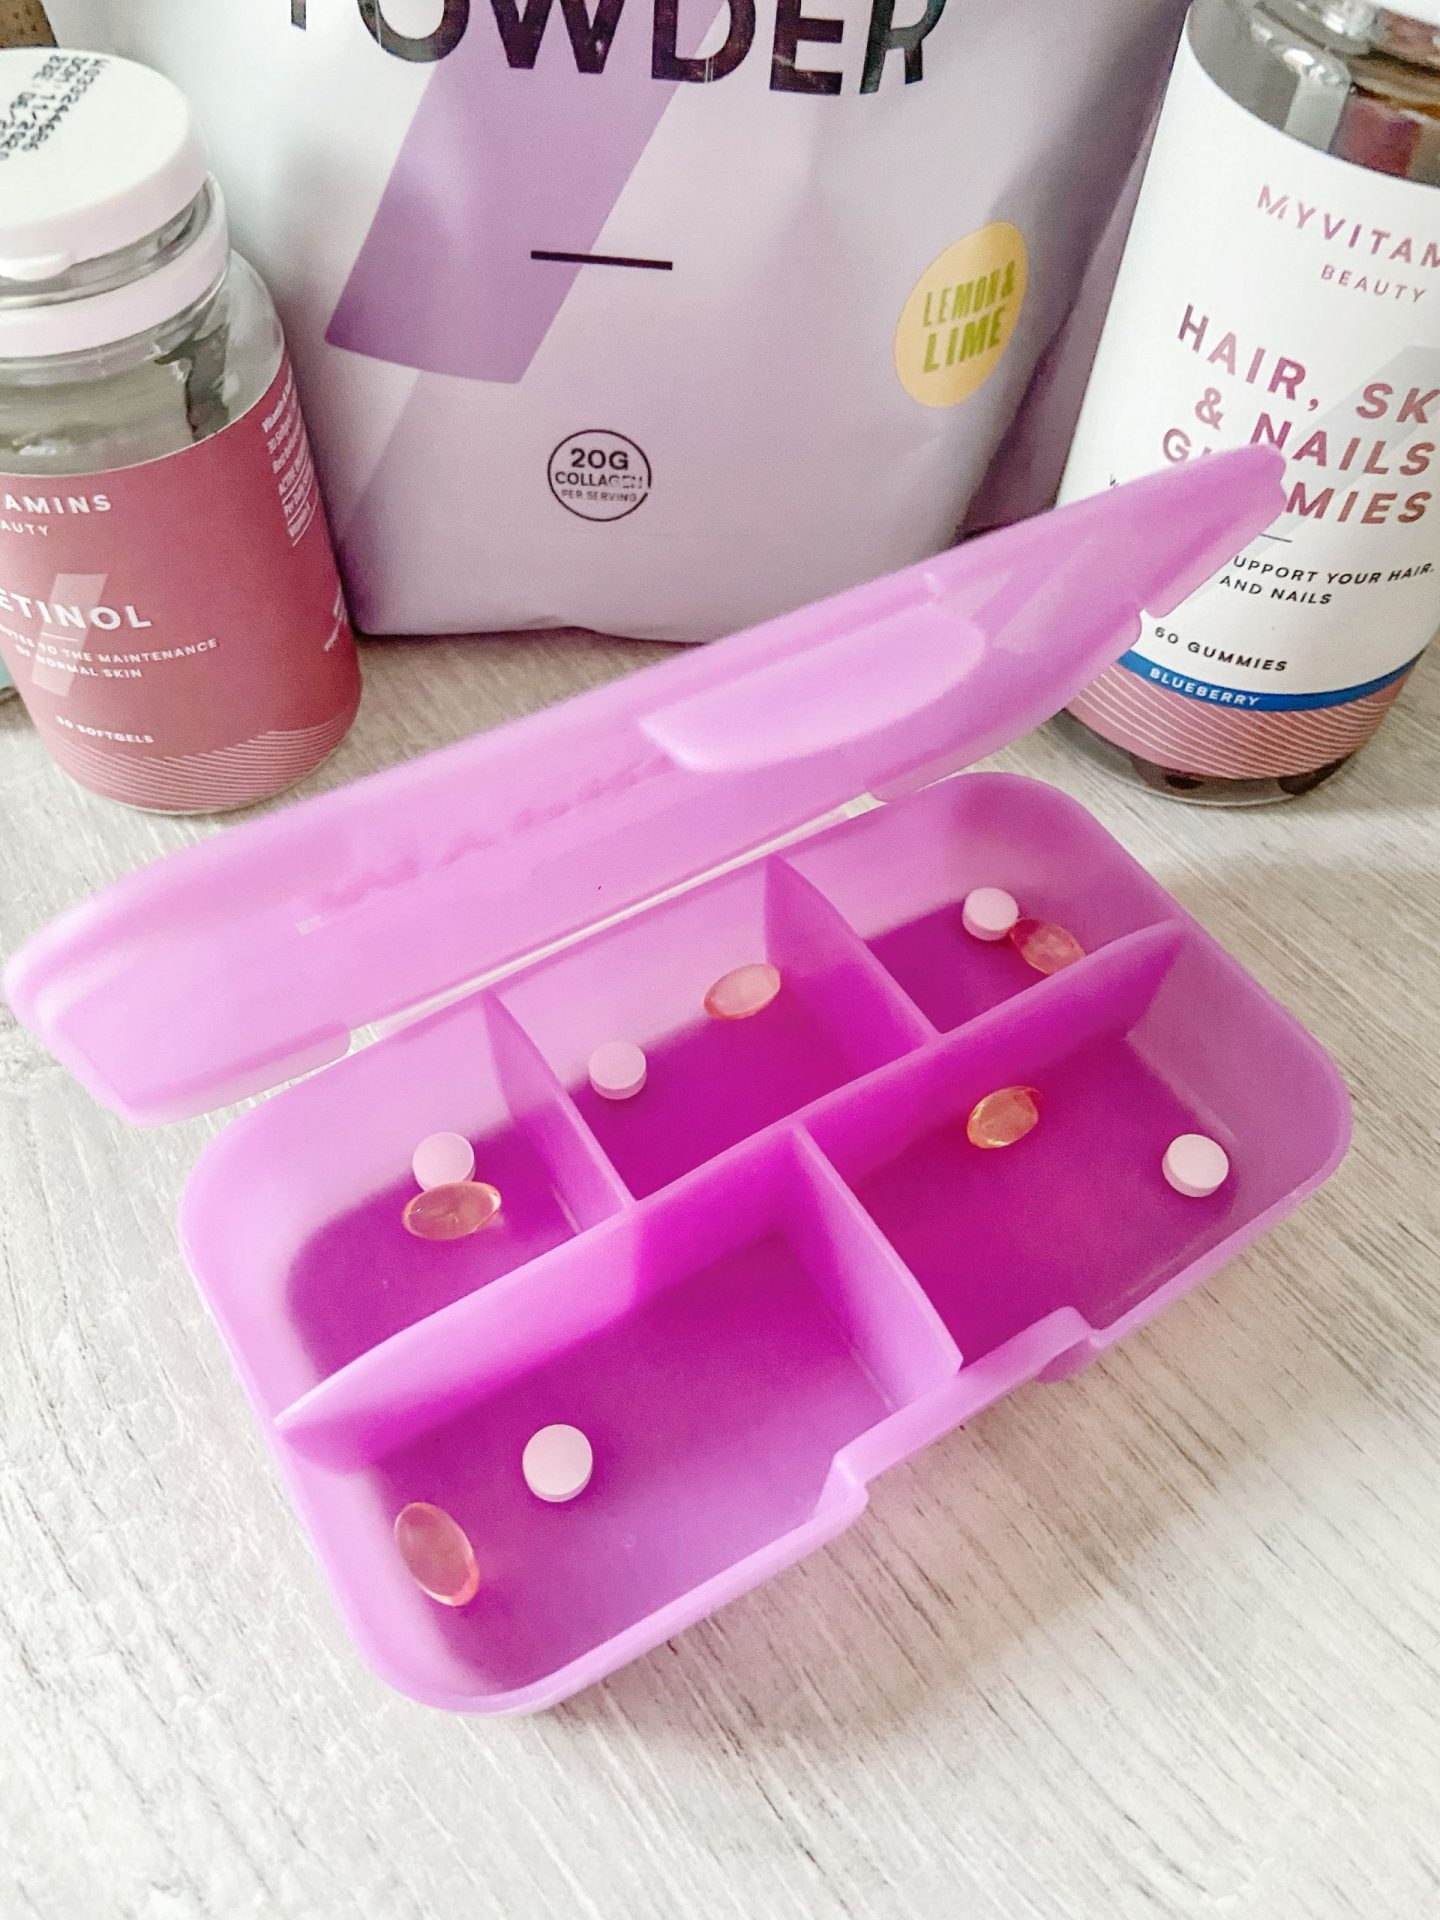 My Vitamins Supplements Review